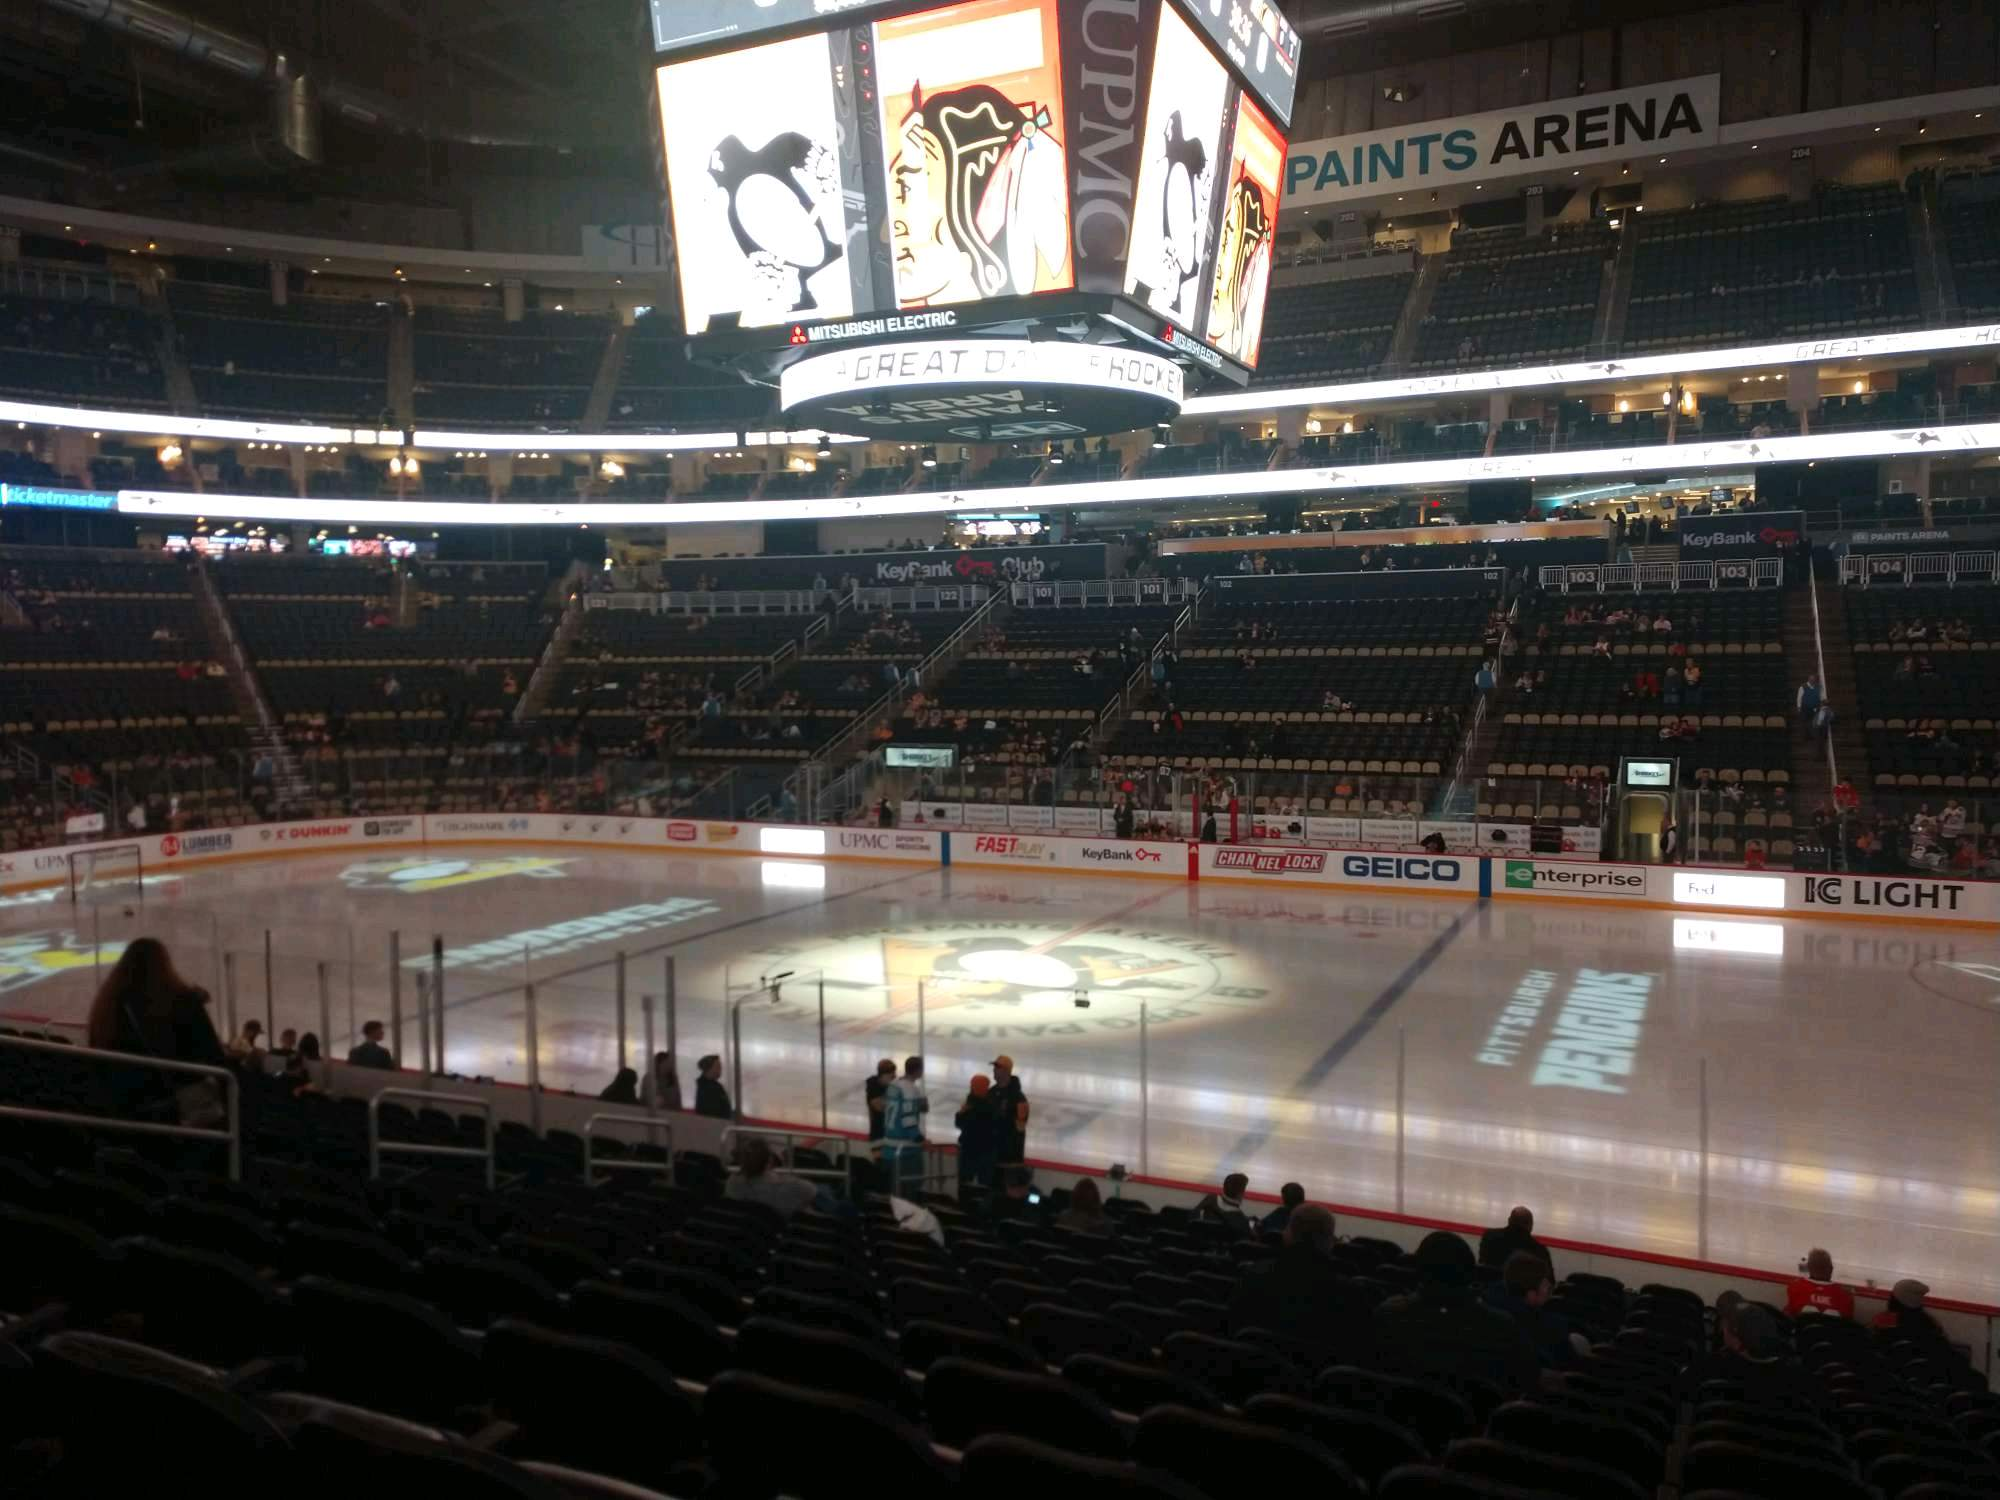 PPG Paints Arena Section 111 Row R Seat 3